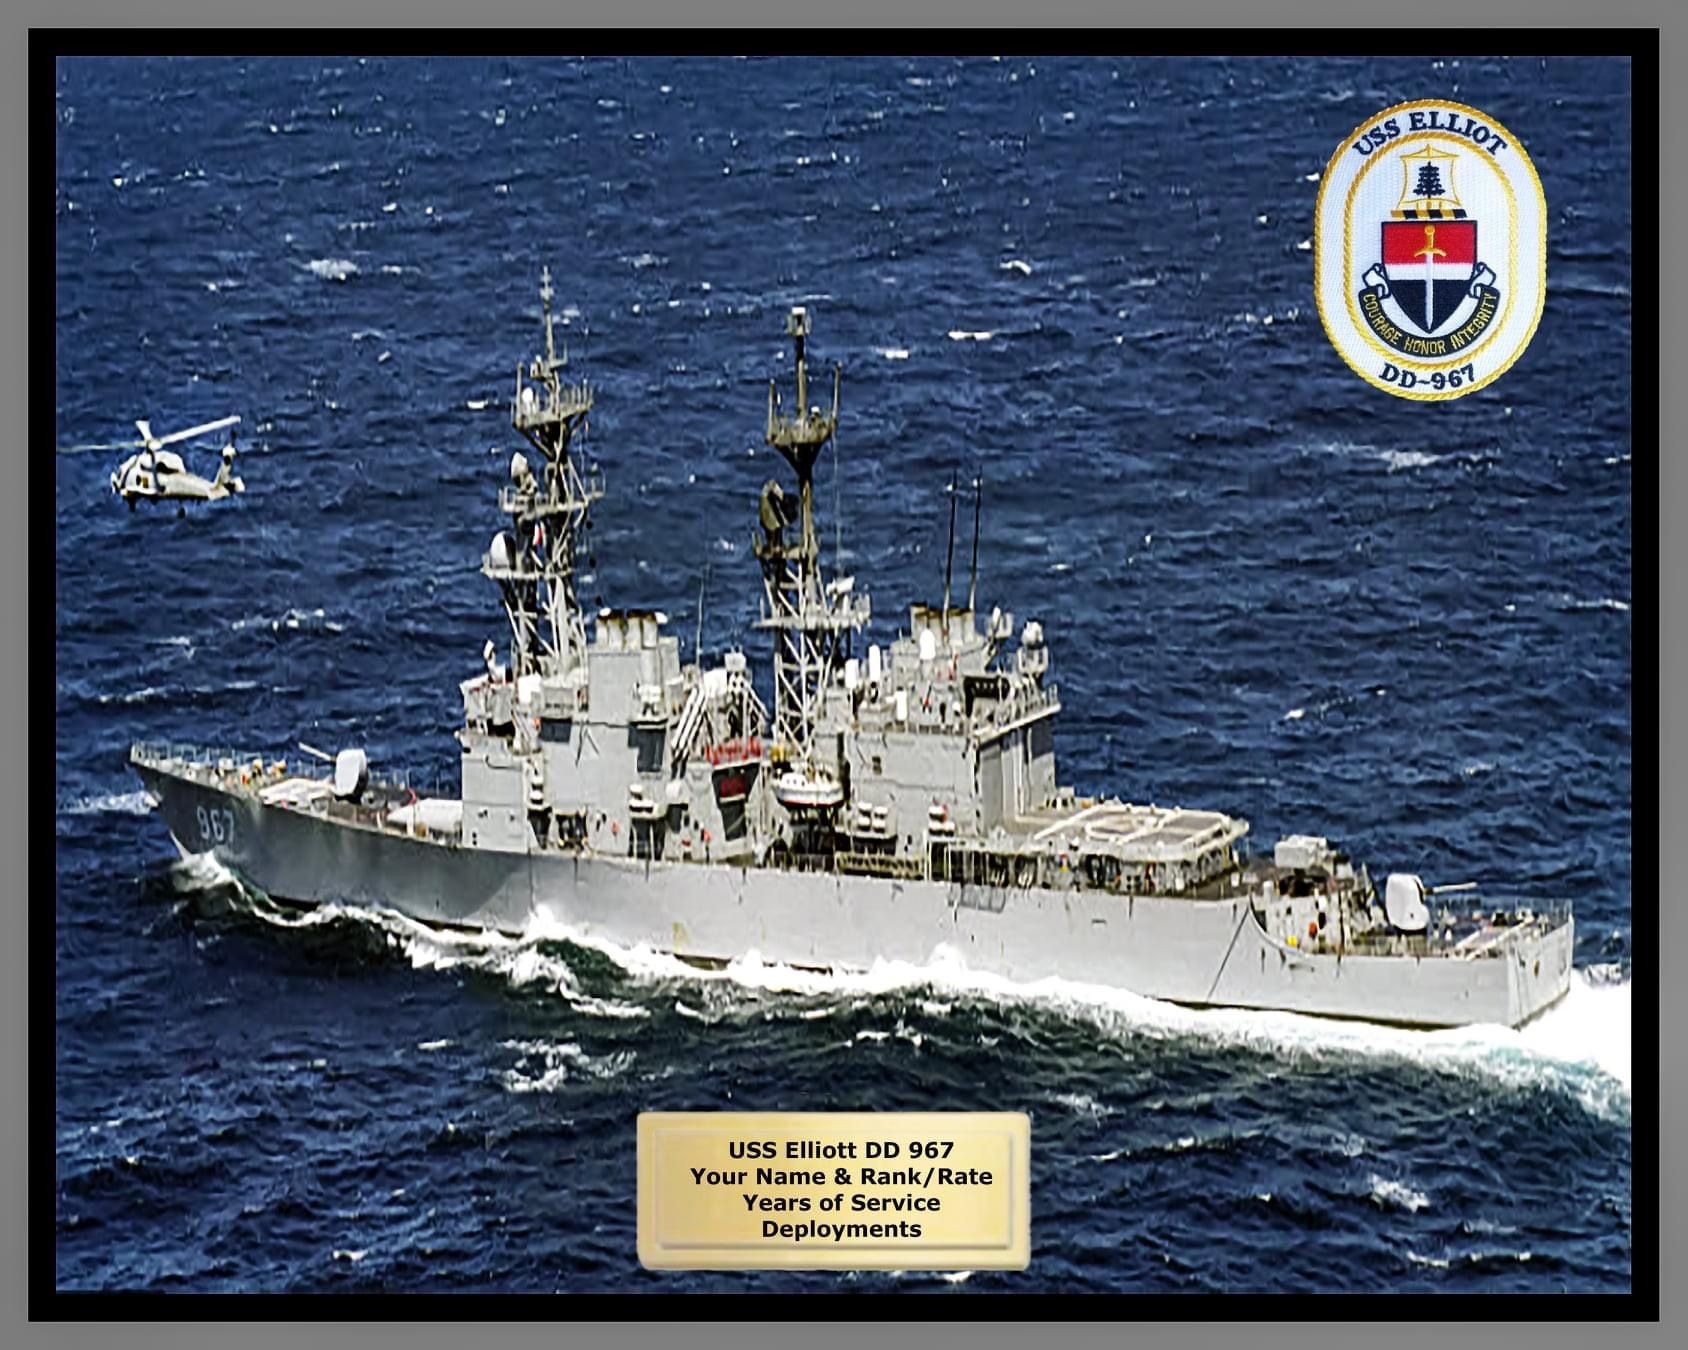 USS ELLIOT DD 967 USN Navy Ship Print ca.1991  US Naval Destroyer